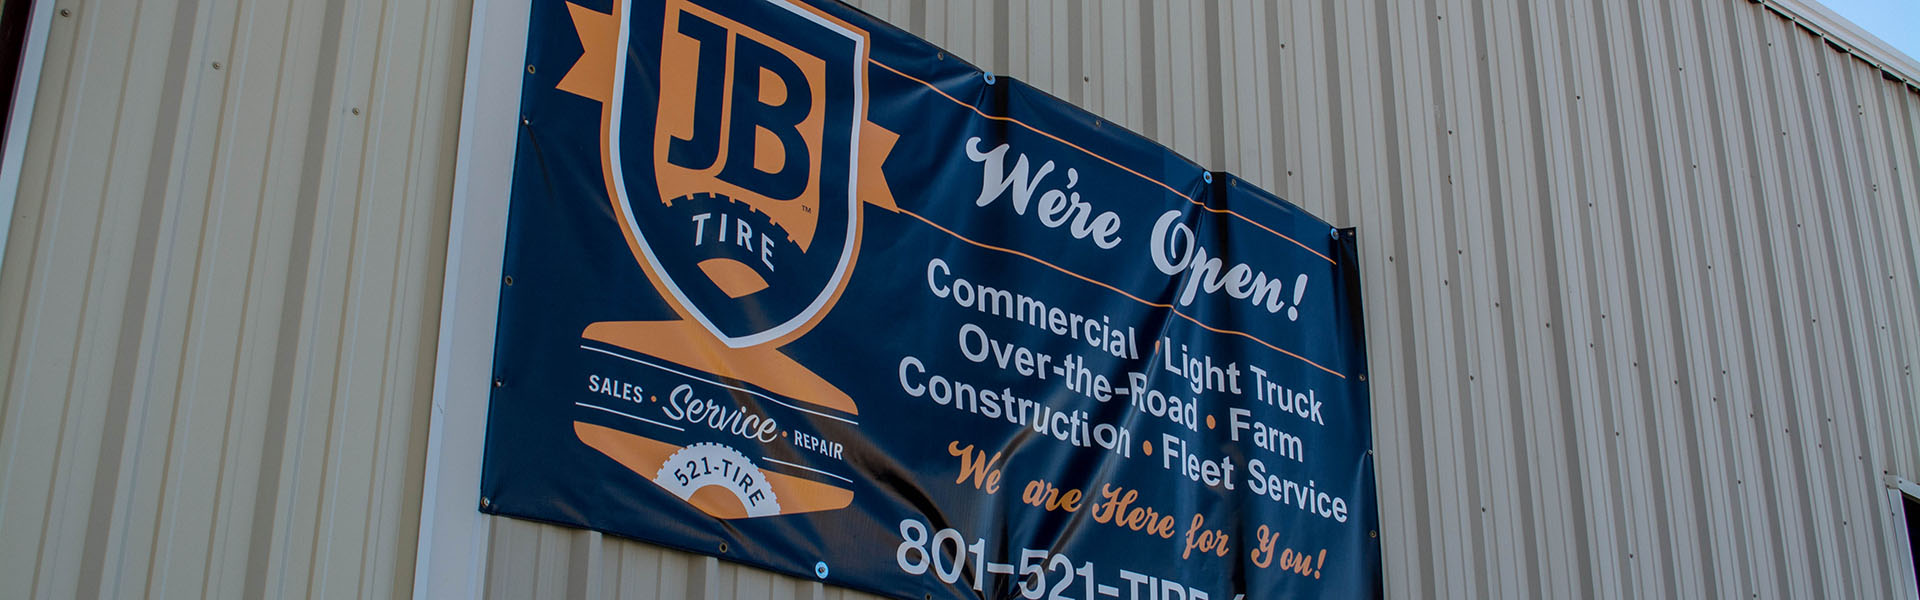 JB Tire Outside Wall Banner